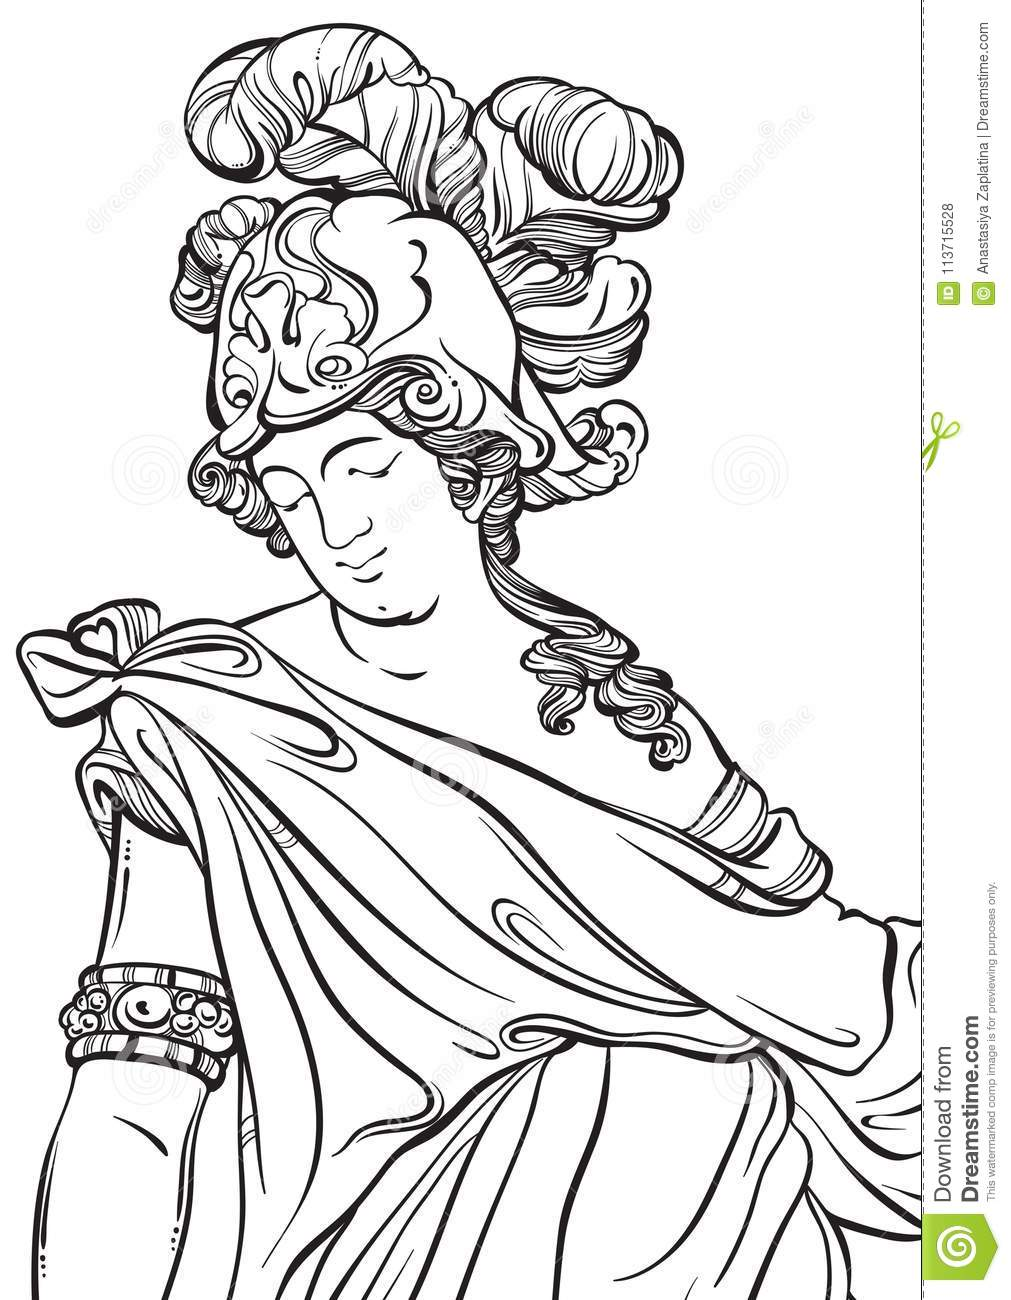 Greek God In Line Style. Great Template For Coloring Book